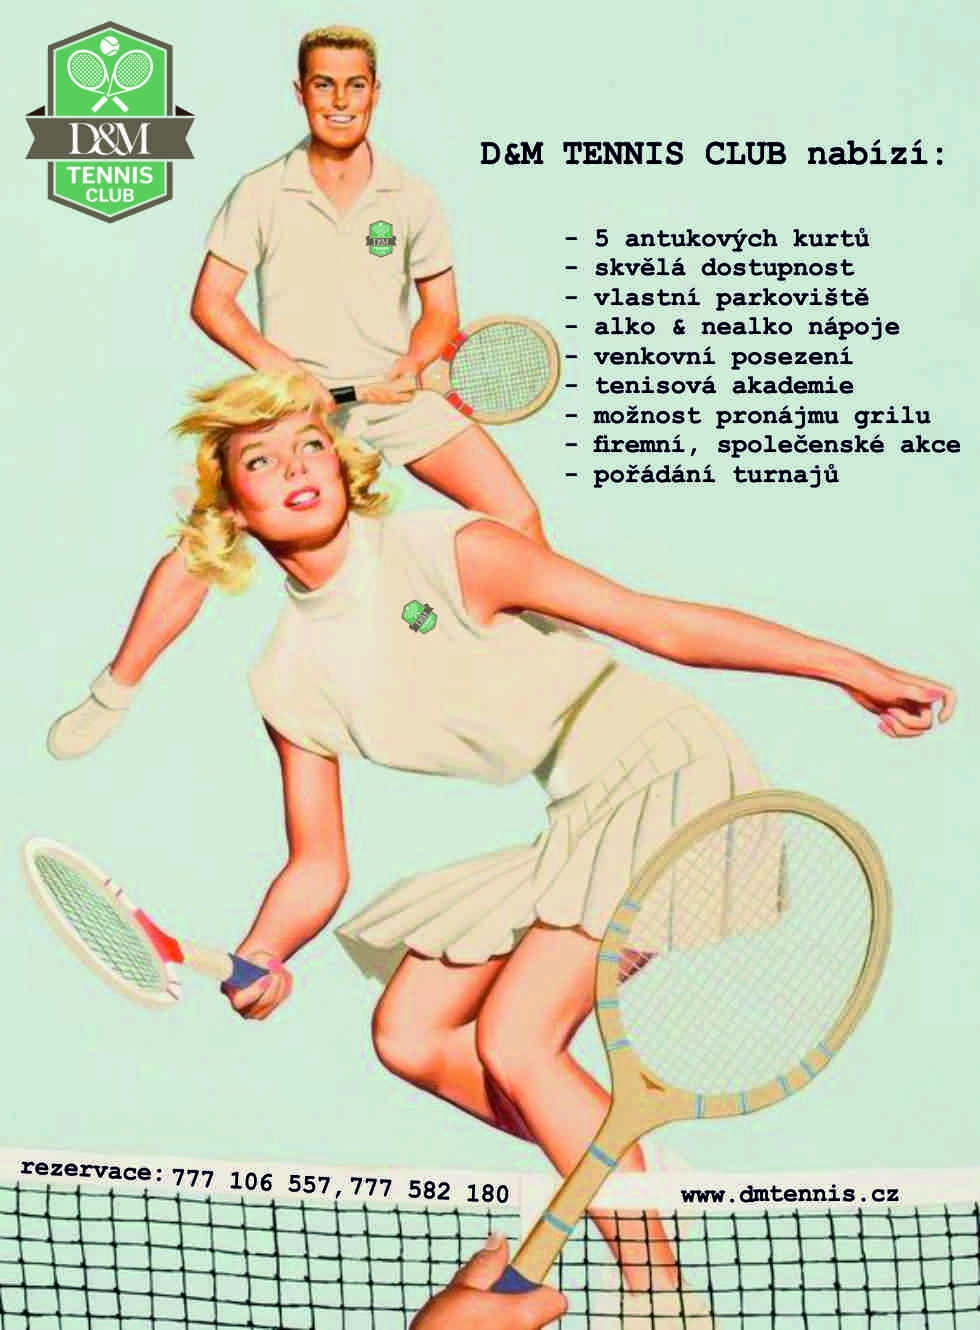 D&M tennis club